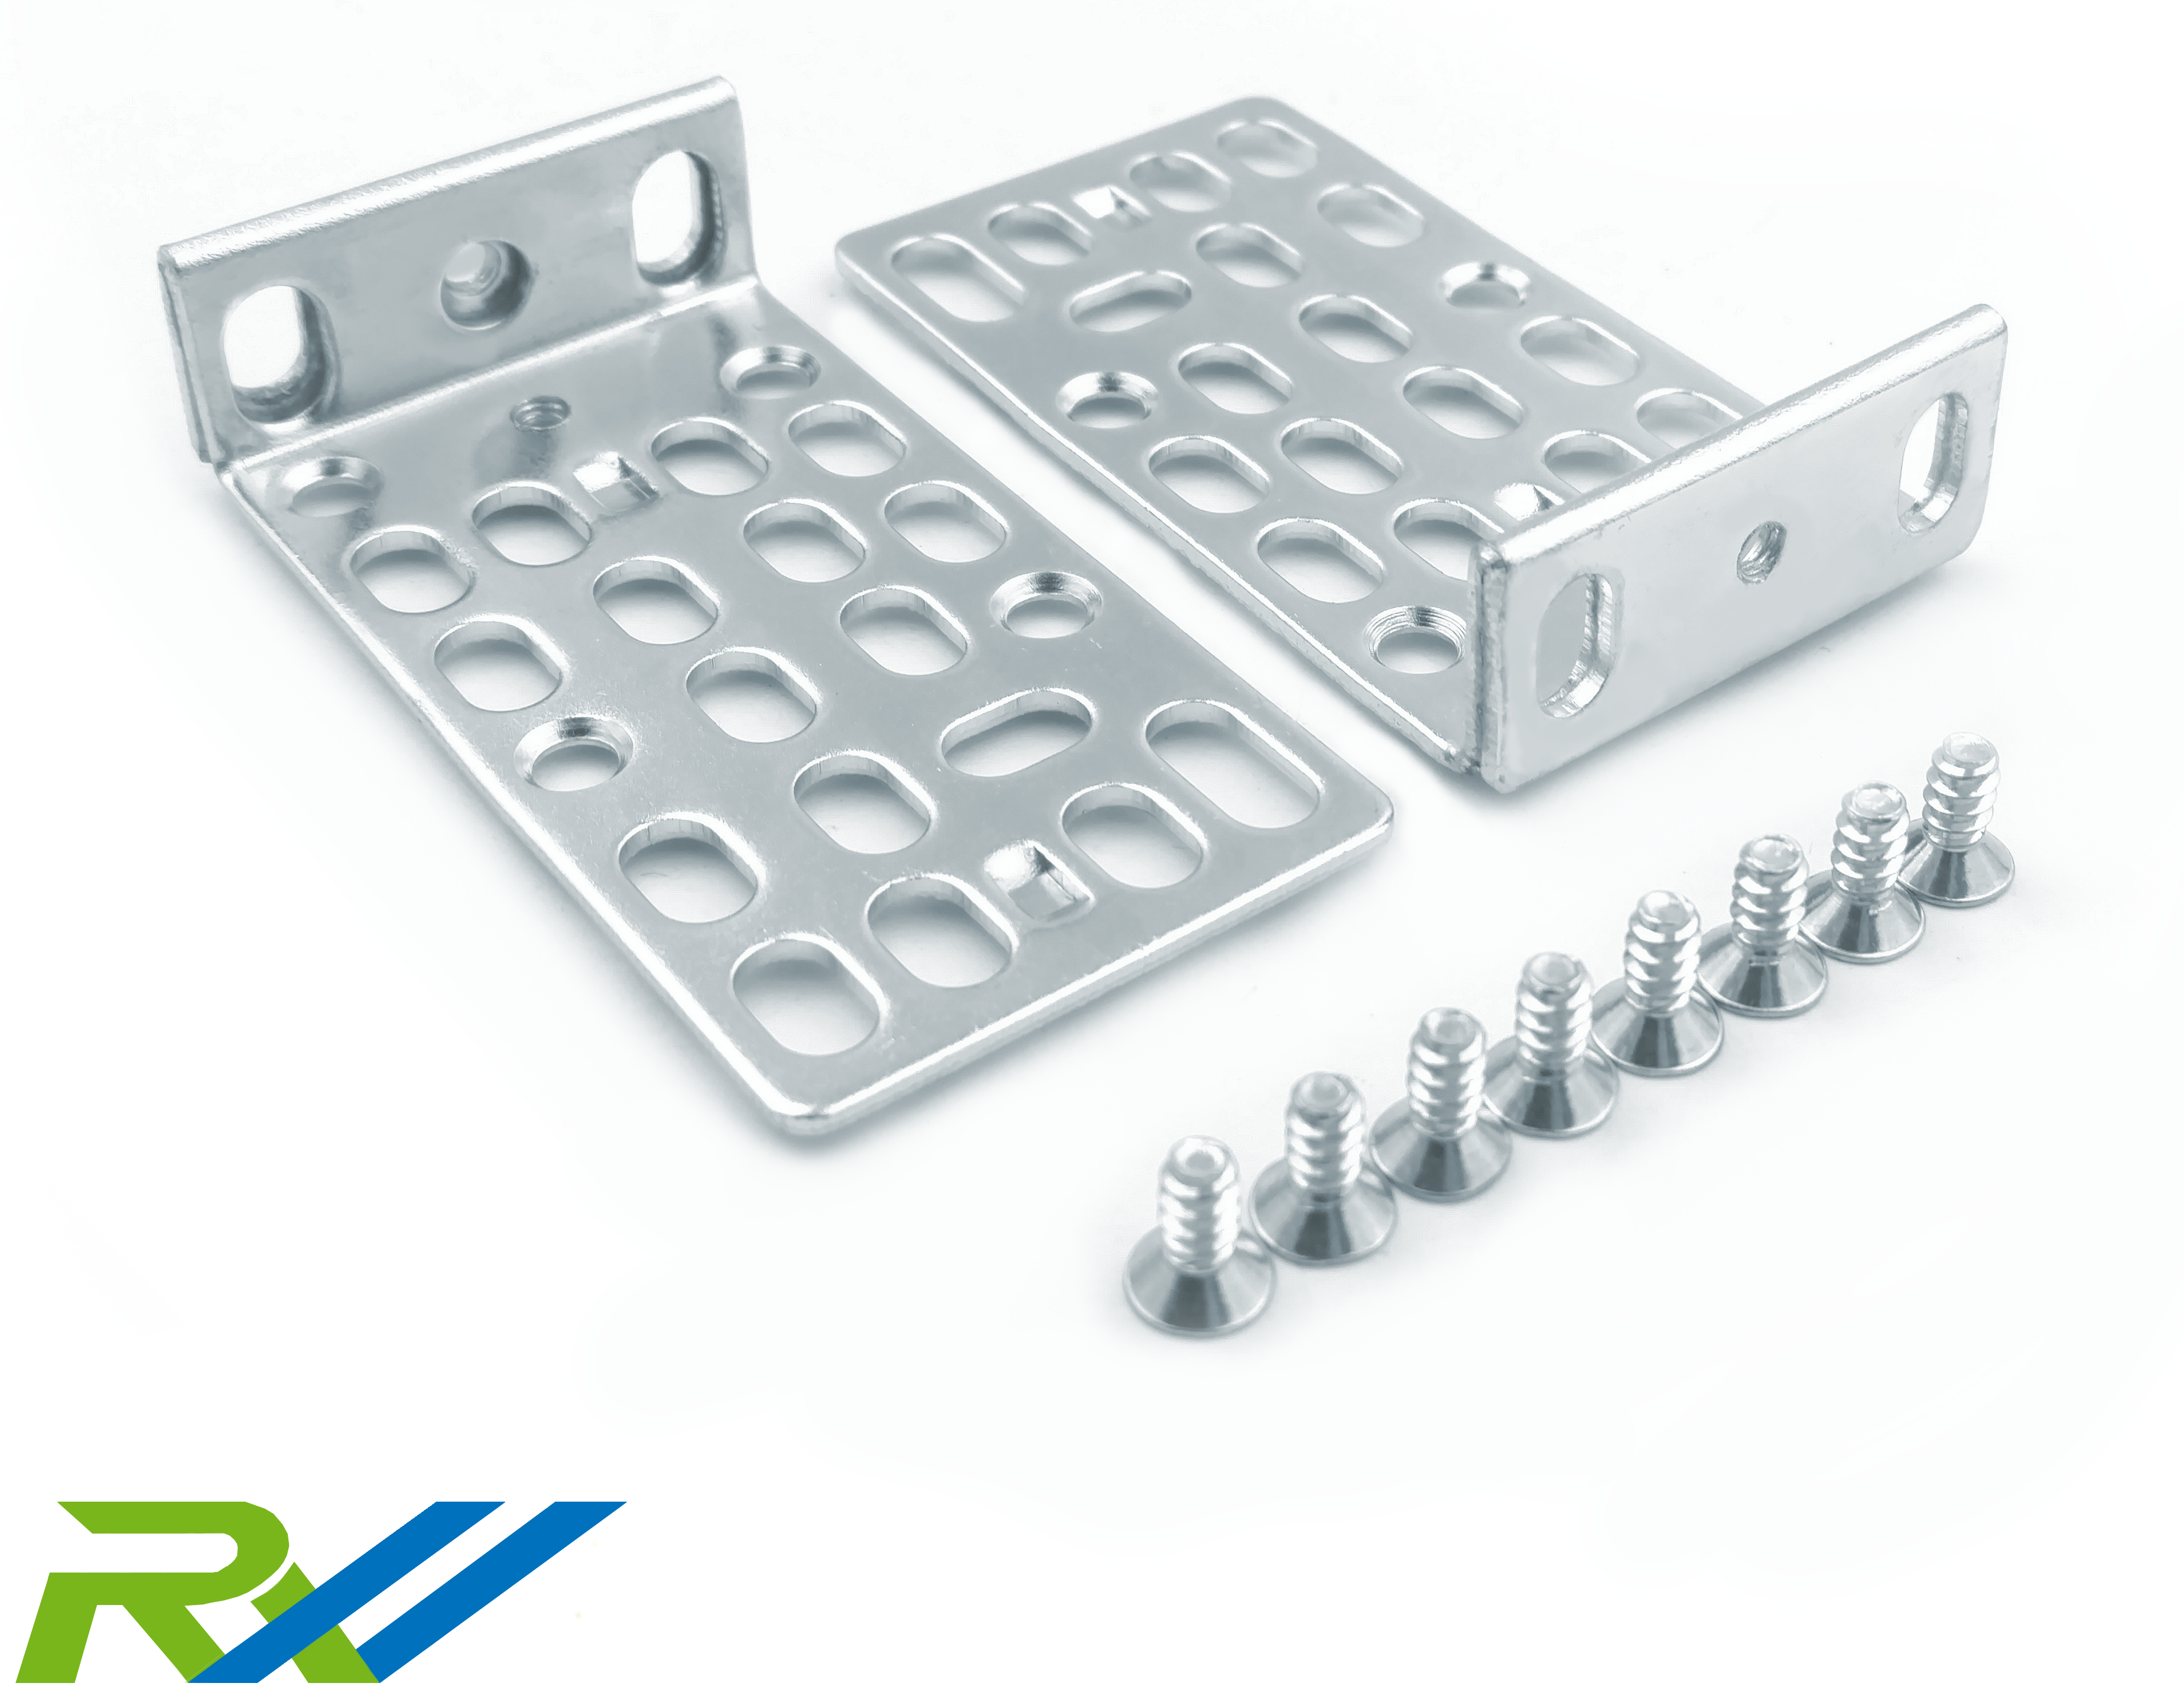 1RU Rack Mount Kit Cisco 3560E, 3750E (1RU)